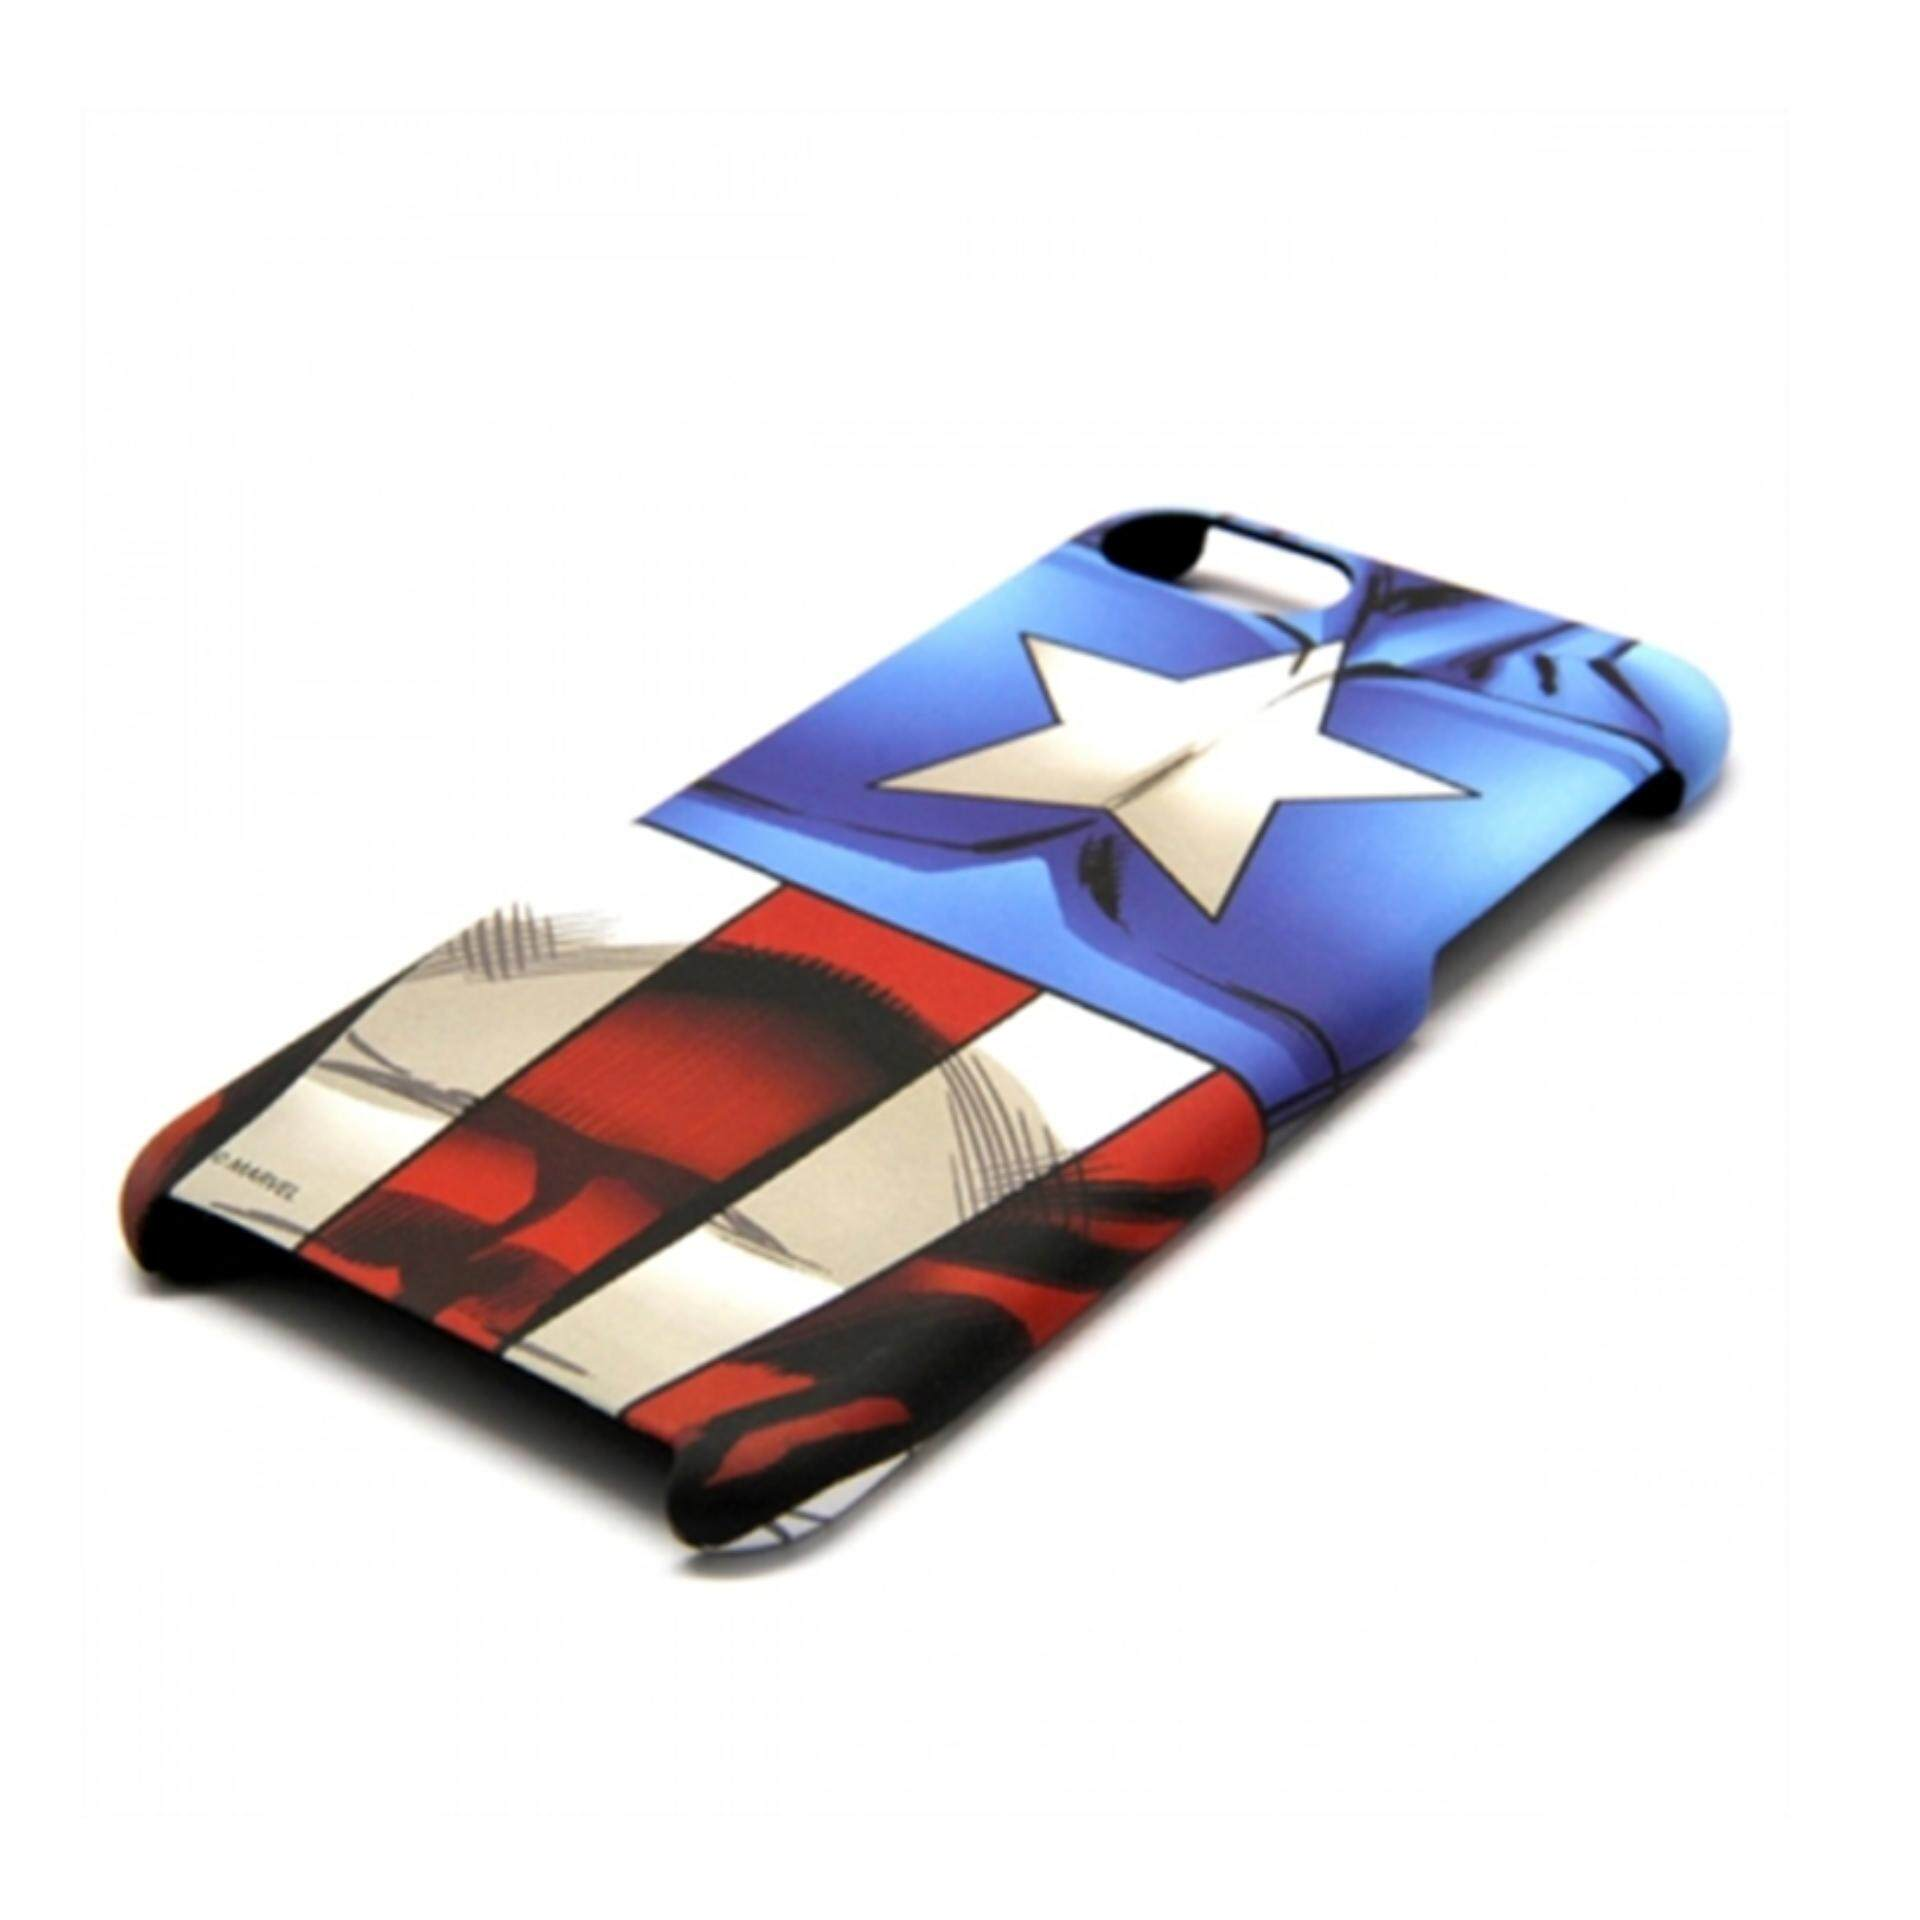 Marvel Avengers iPhone 7 Case 4.7 Inches - Captain America